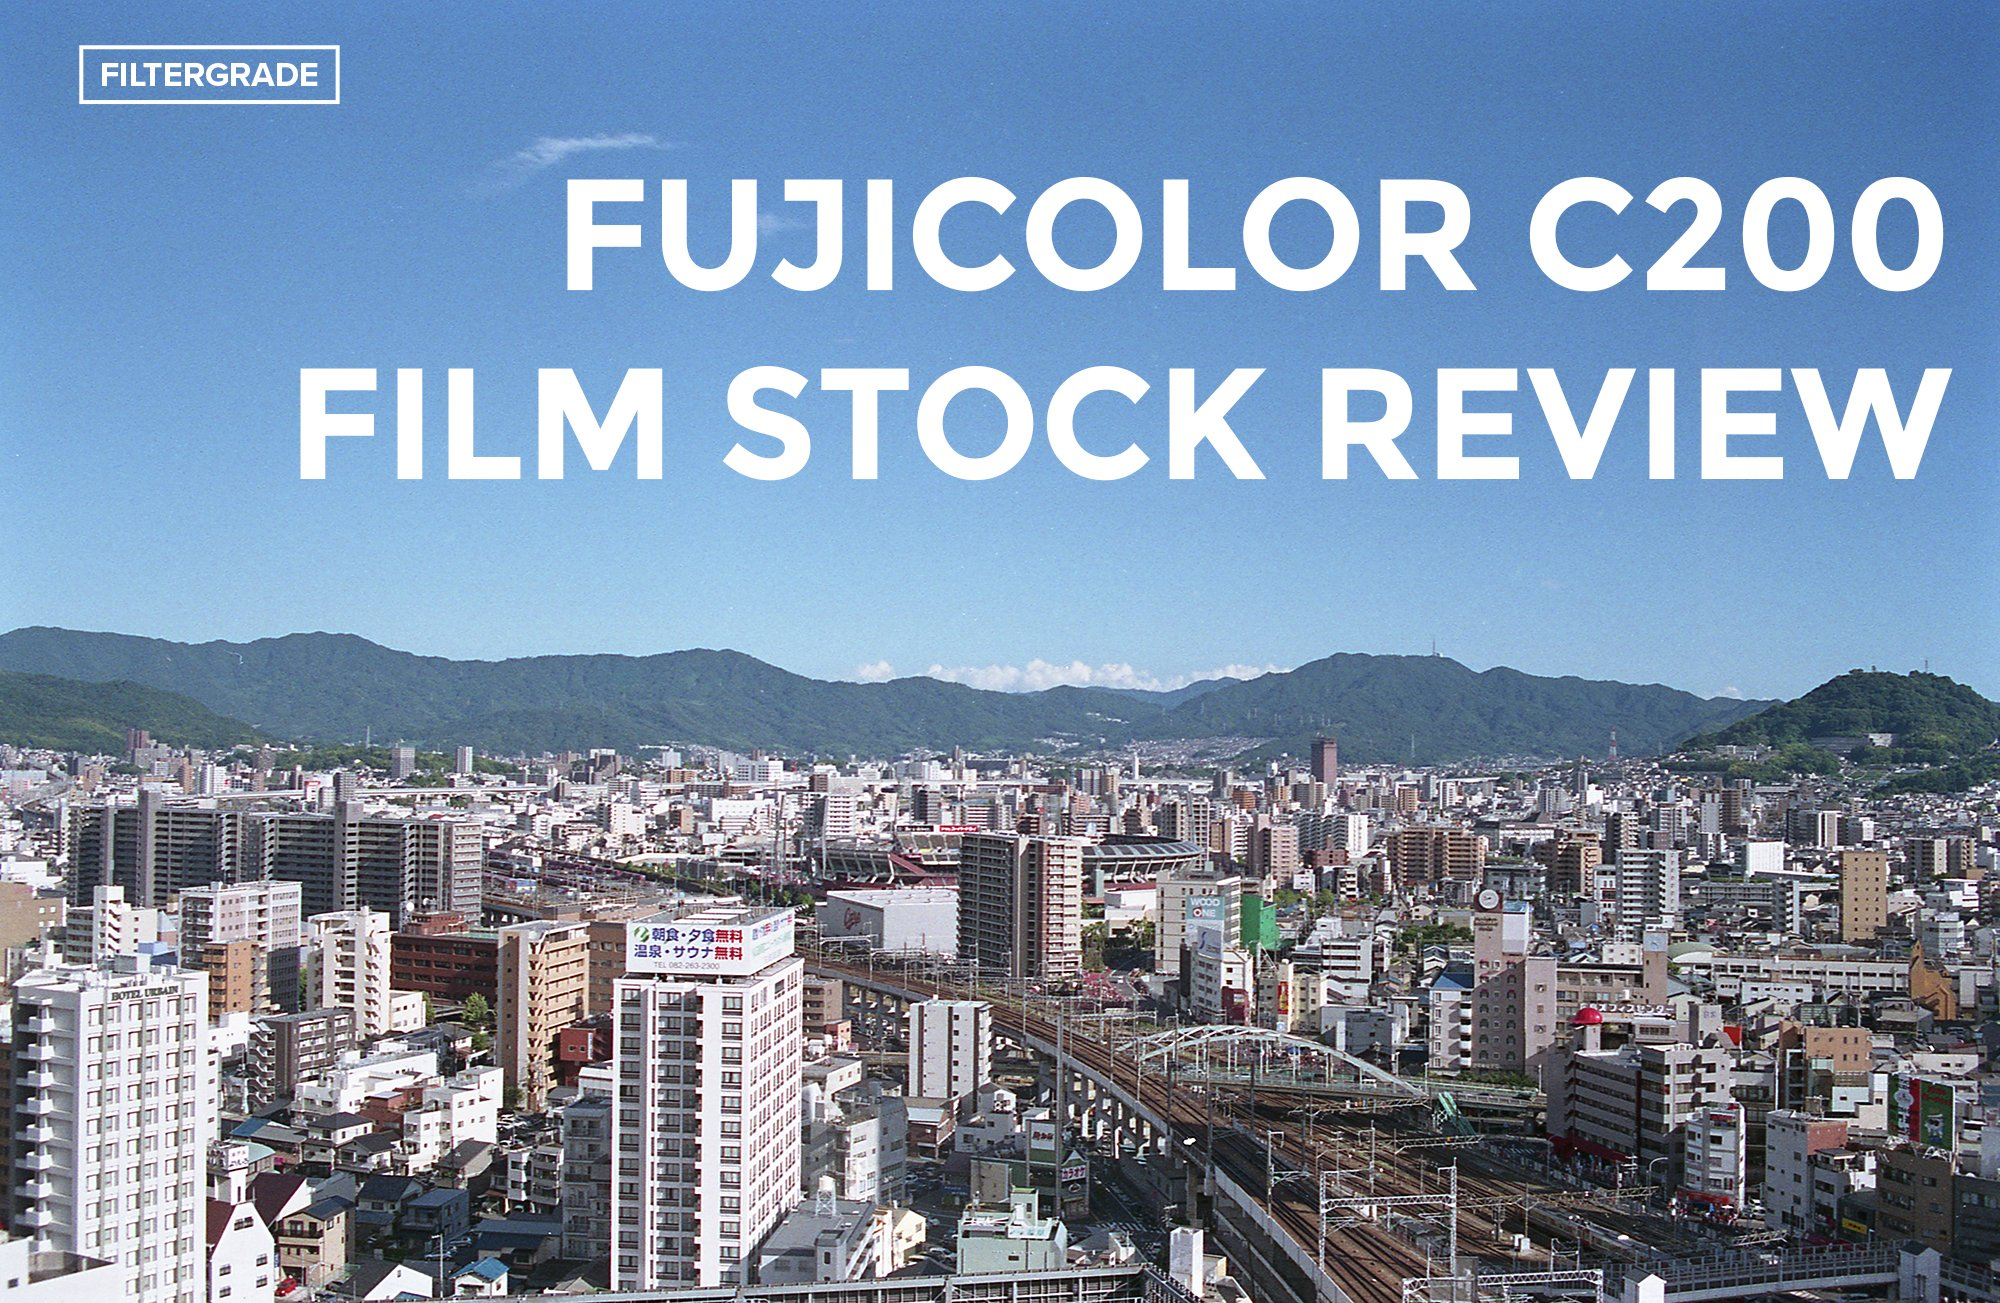 Fujifilm Fujicolor C200 Film Stock Review - Matt Moloney - FilterGrade copy